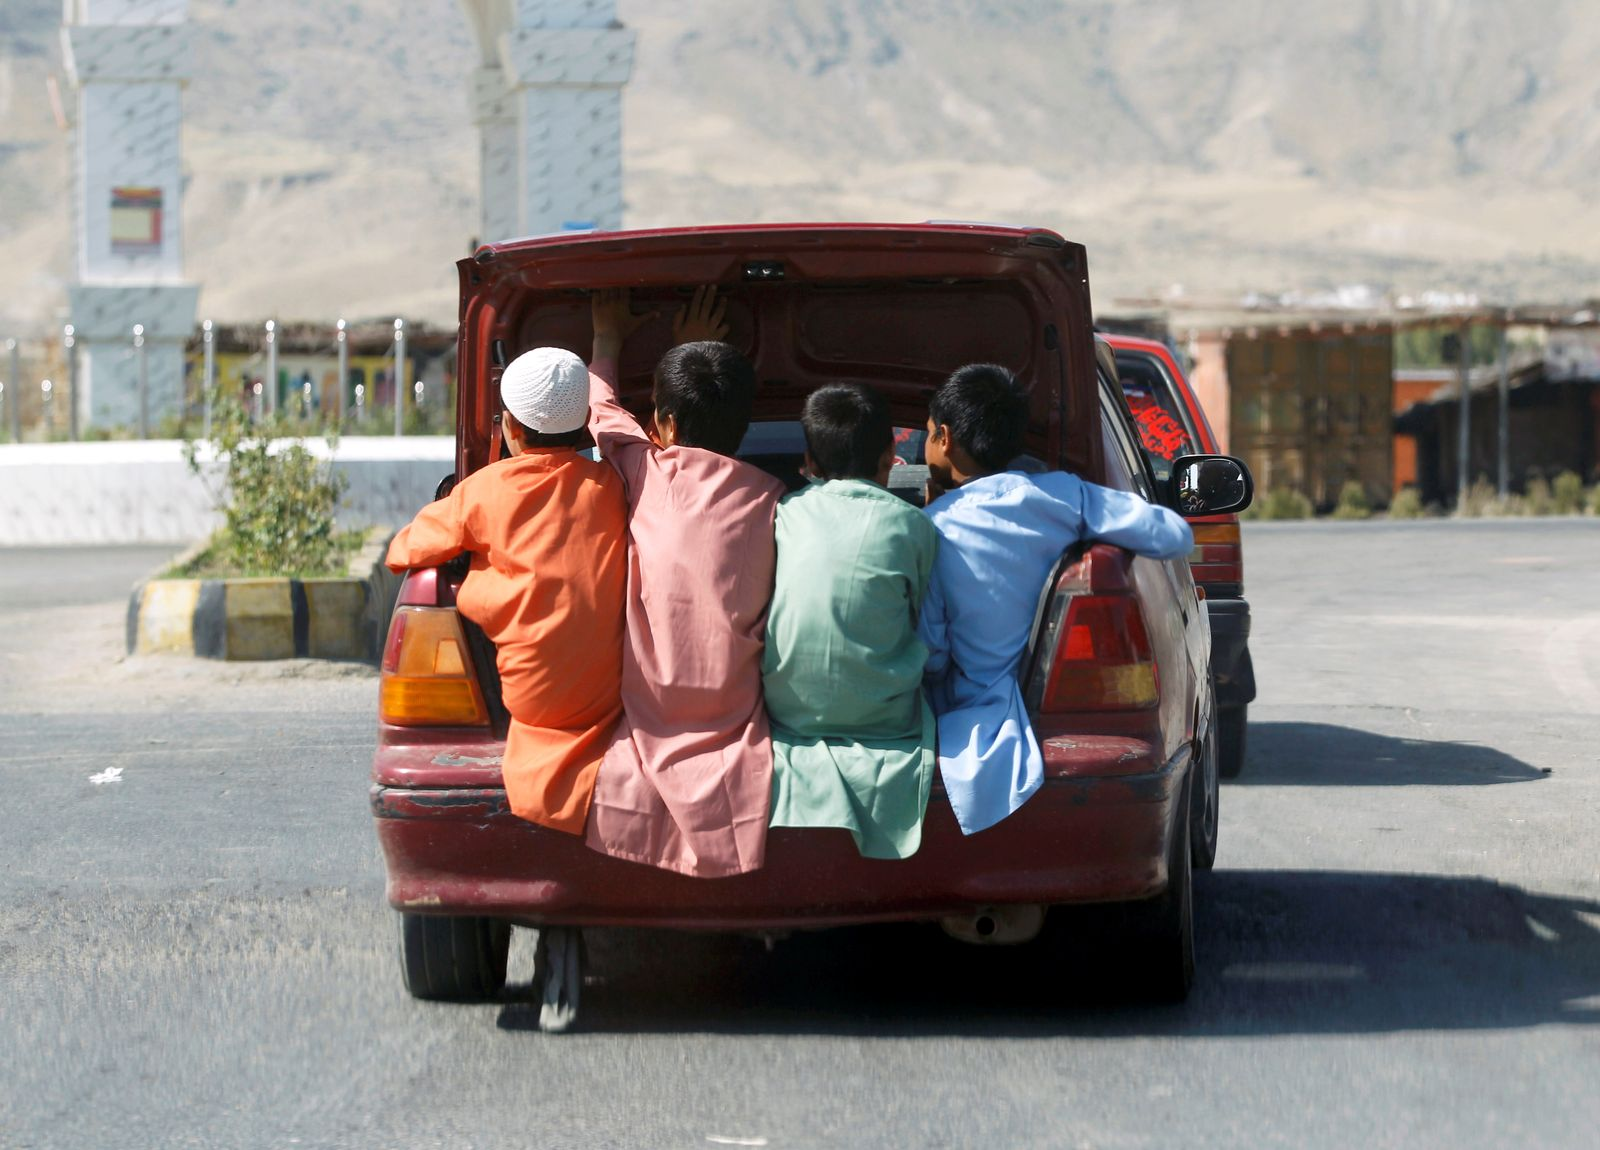 Afghan boys travel in the back of a car during Eid al-Fitr, a Muslim festival marking the end the holy fasting month of Ramadan, amid the spread of the coronavirus disease (COVID-19), in Laghman province